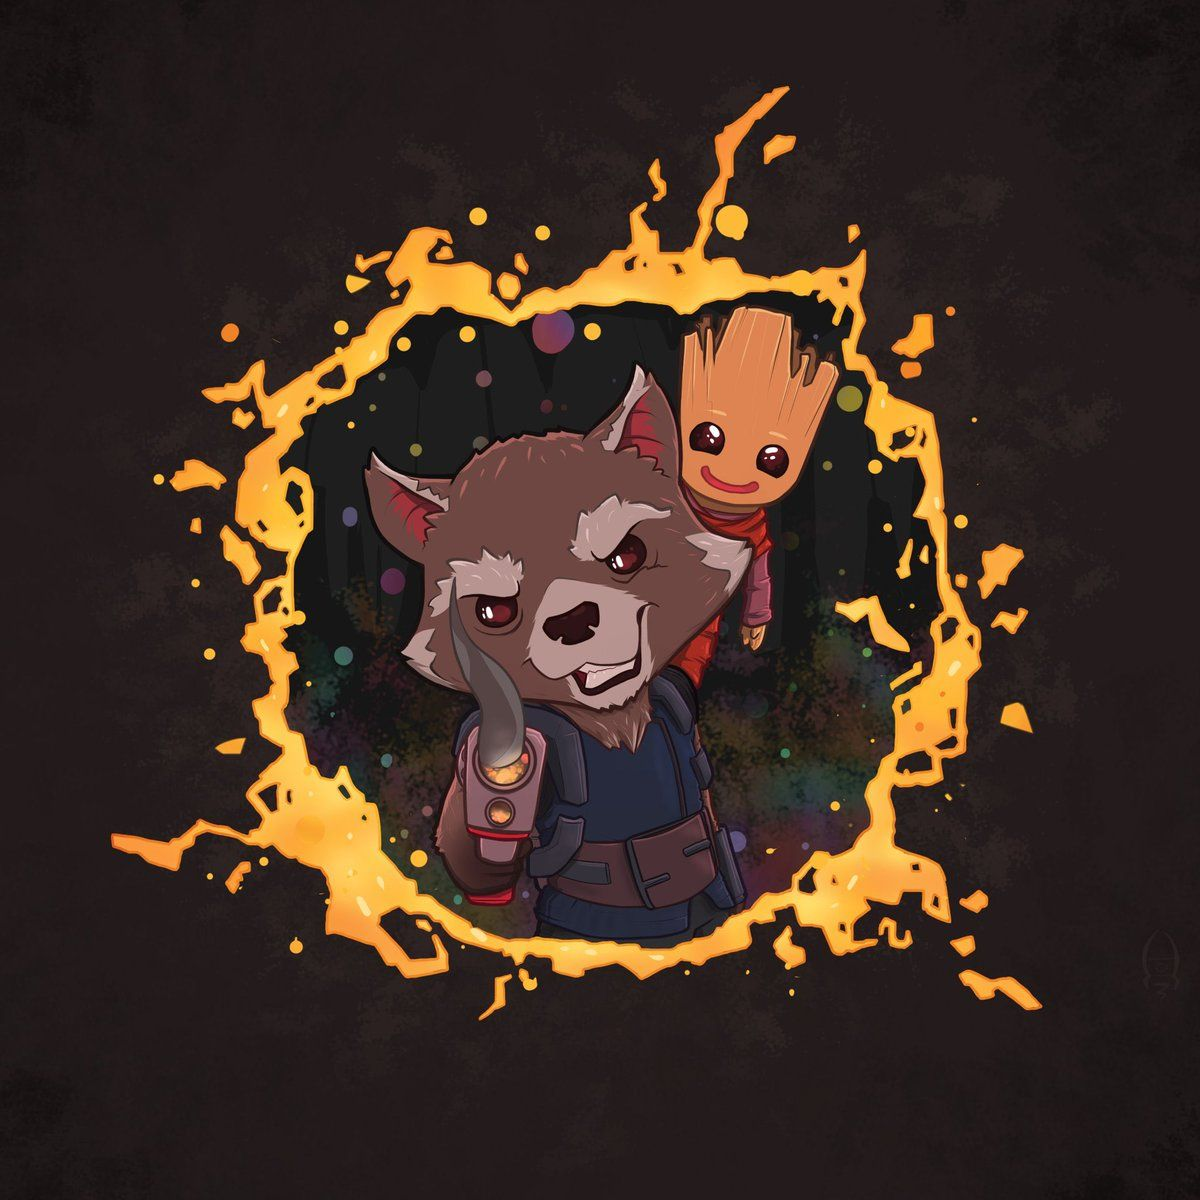 Fan Art Of Rocket And Baby Groot From Guardians Of